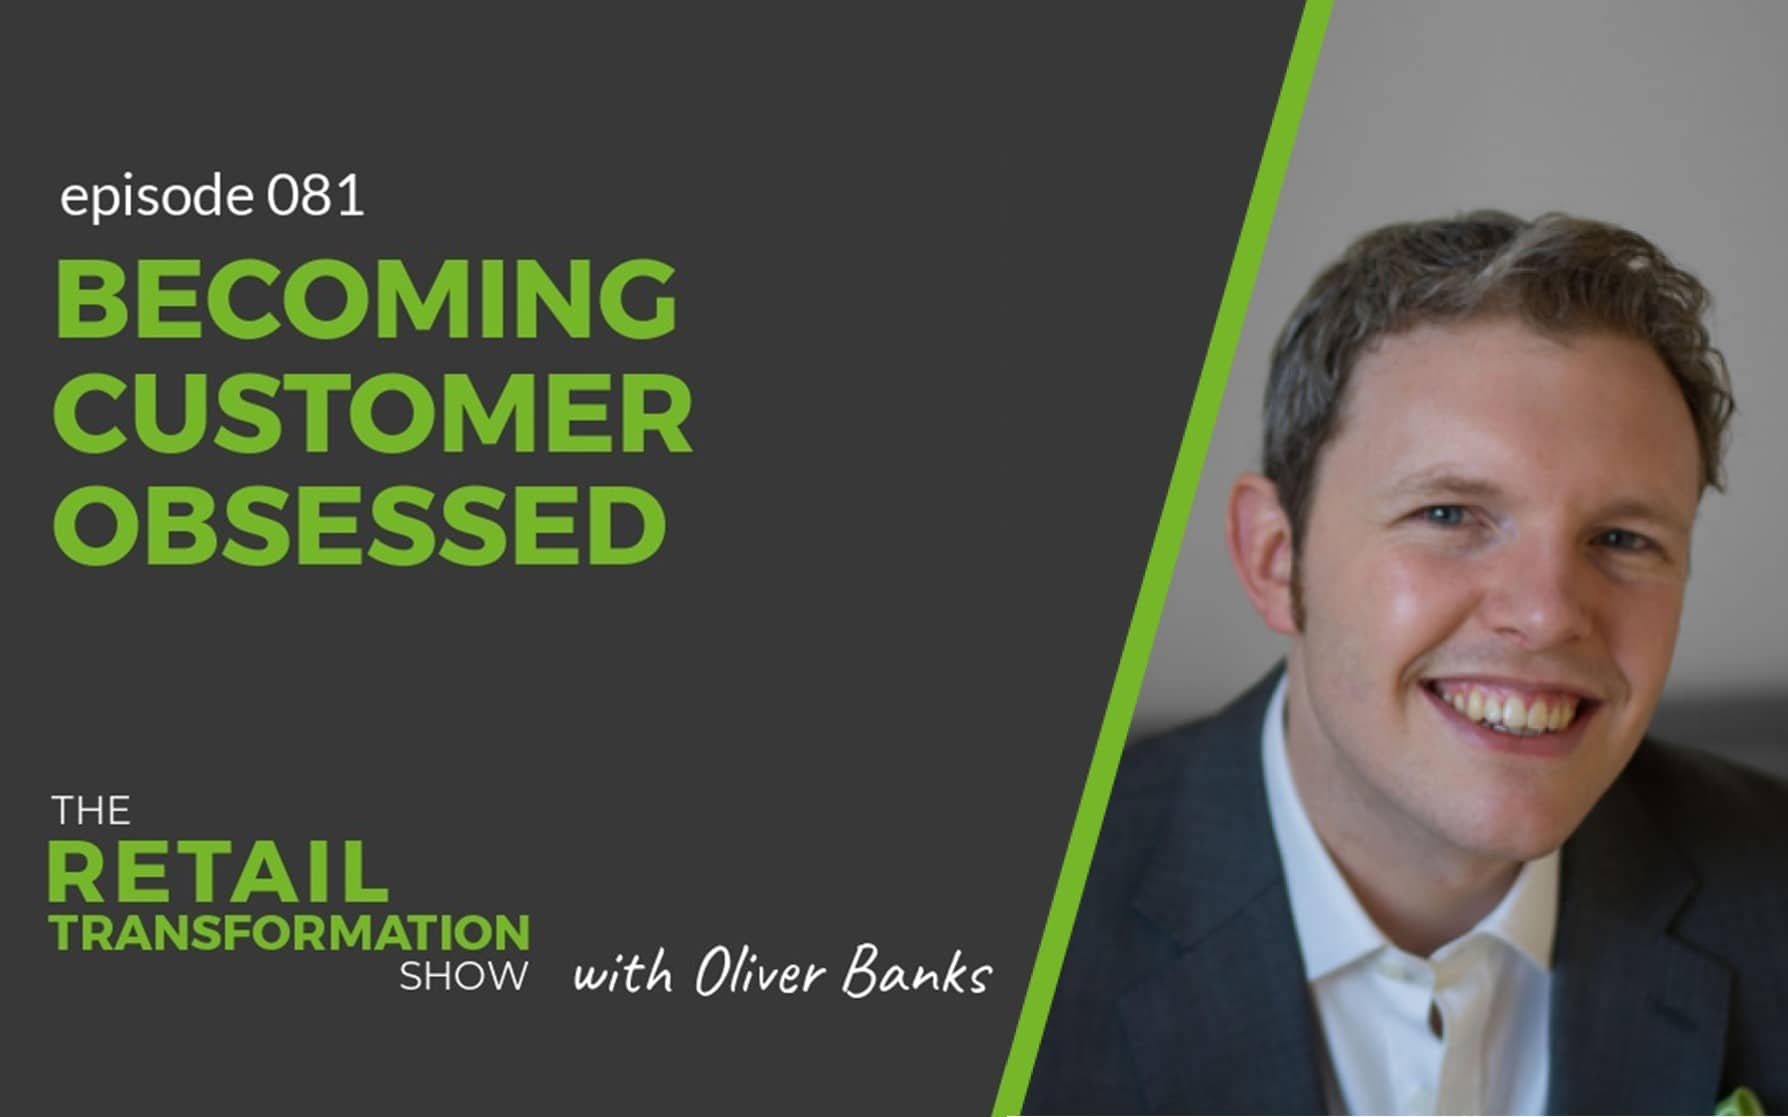 081: Becoming Customer Obsessed - The Retail Transformation Show with Oliver Banks